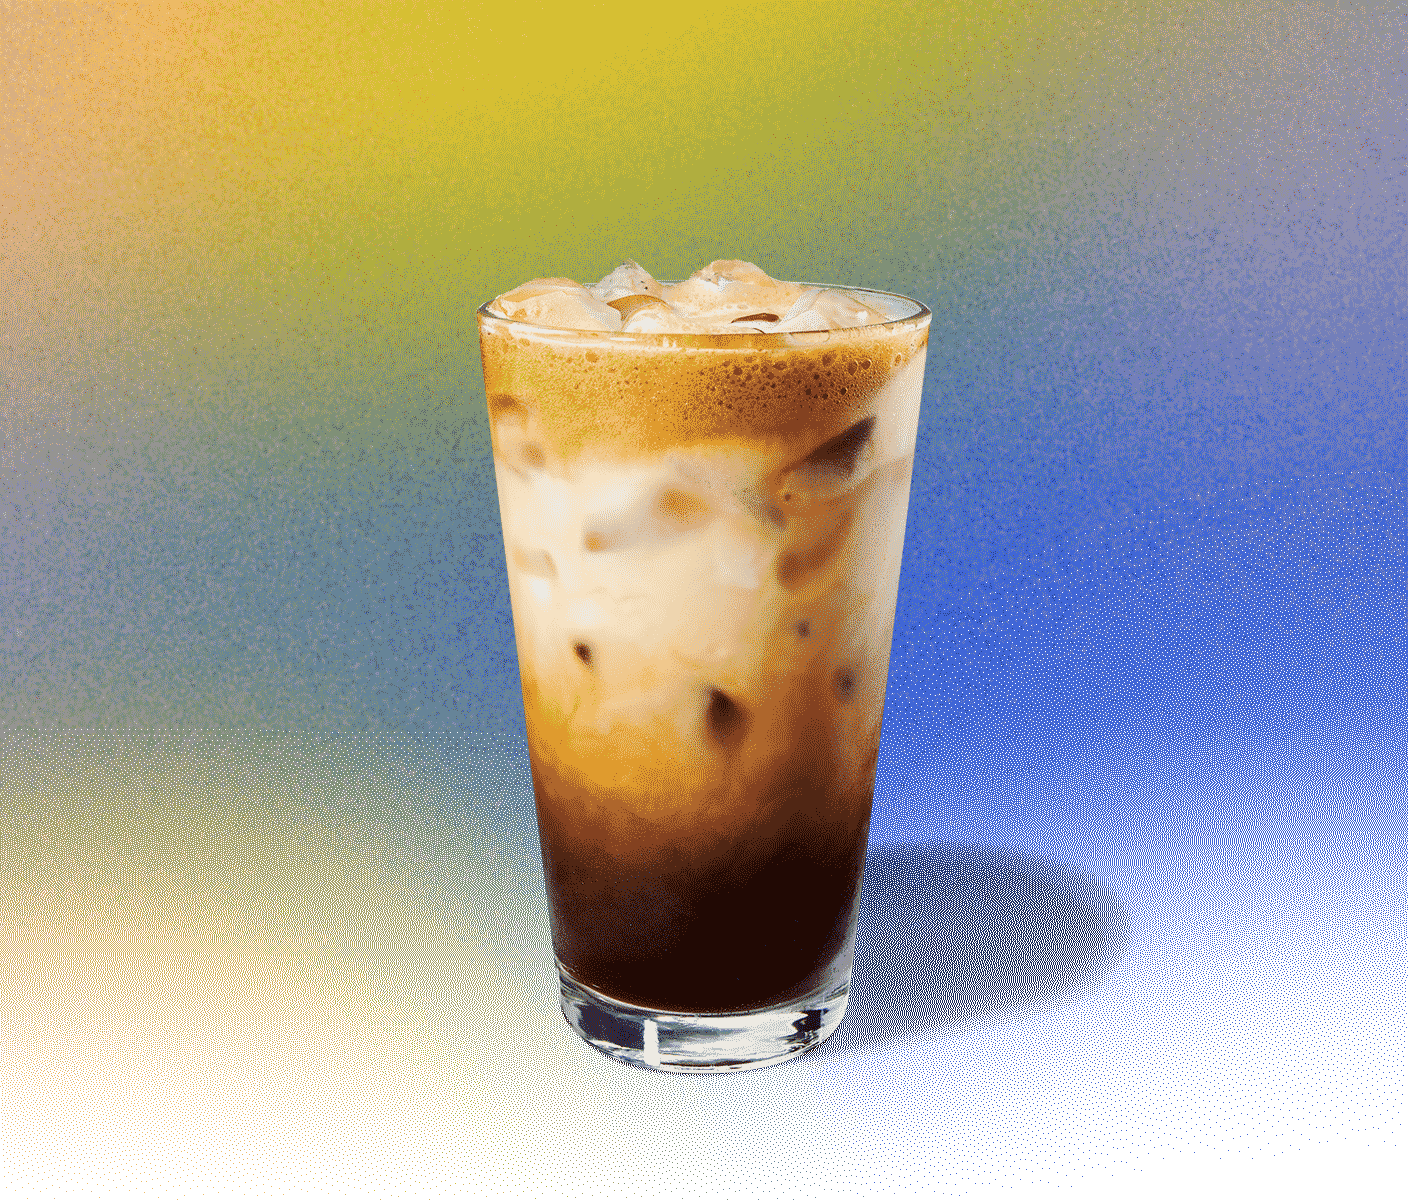 Iced coffee drink with creamy swirls in a tall glass